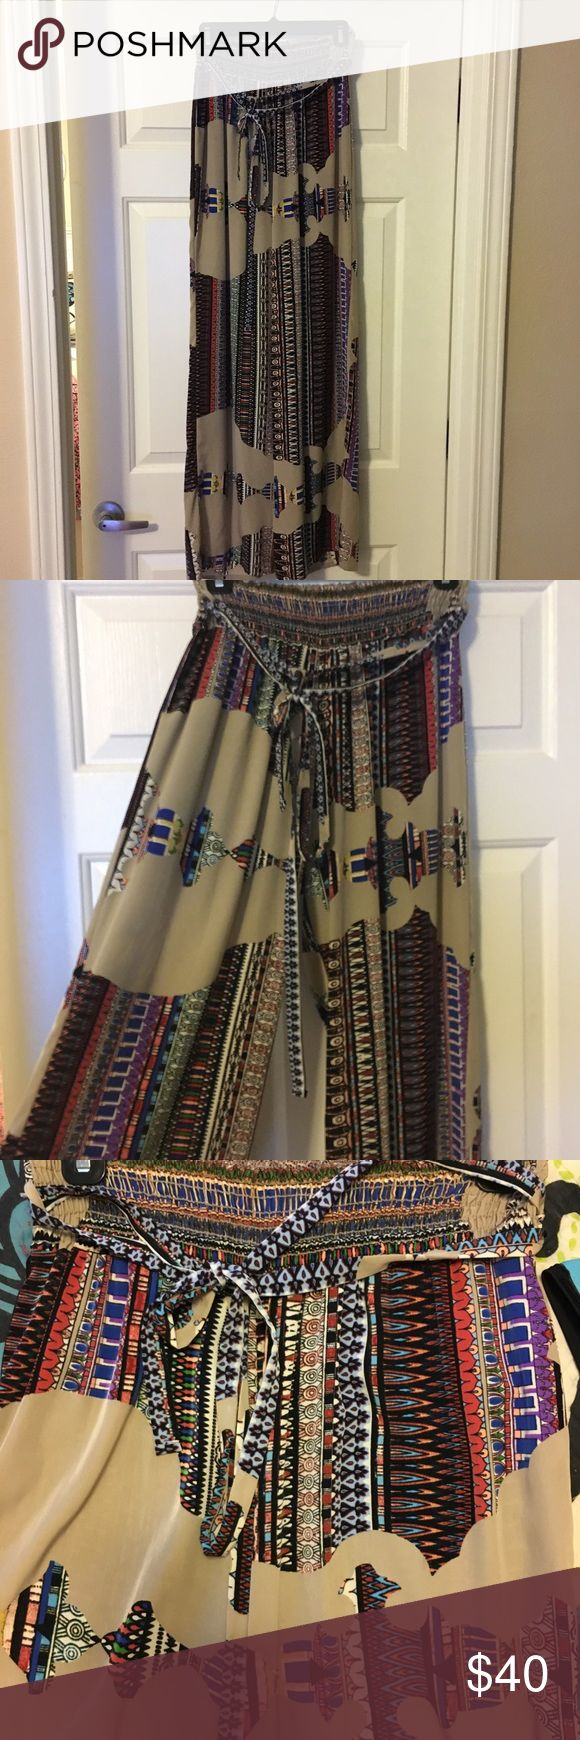 """Aztec pants - Size Medium Cute fun and free flowing Aztec printed pants. Perfectly unique for the girl that wants to stand out. Dress them up or dress them down. Only worn twice. Size Medium. I am 5'9"""" and they are long enough for me. Can be worn with heels or flats. Pants"""